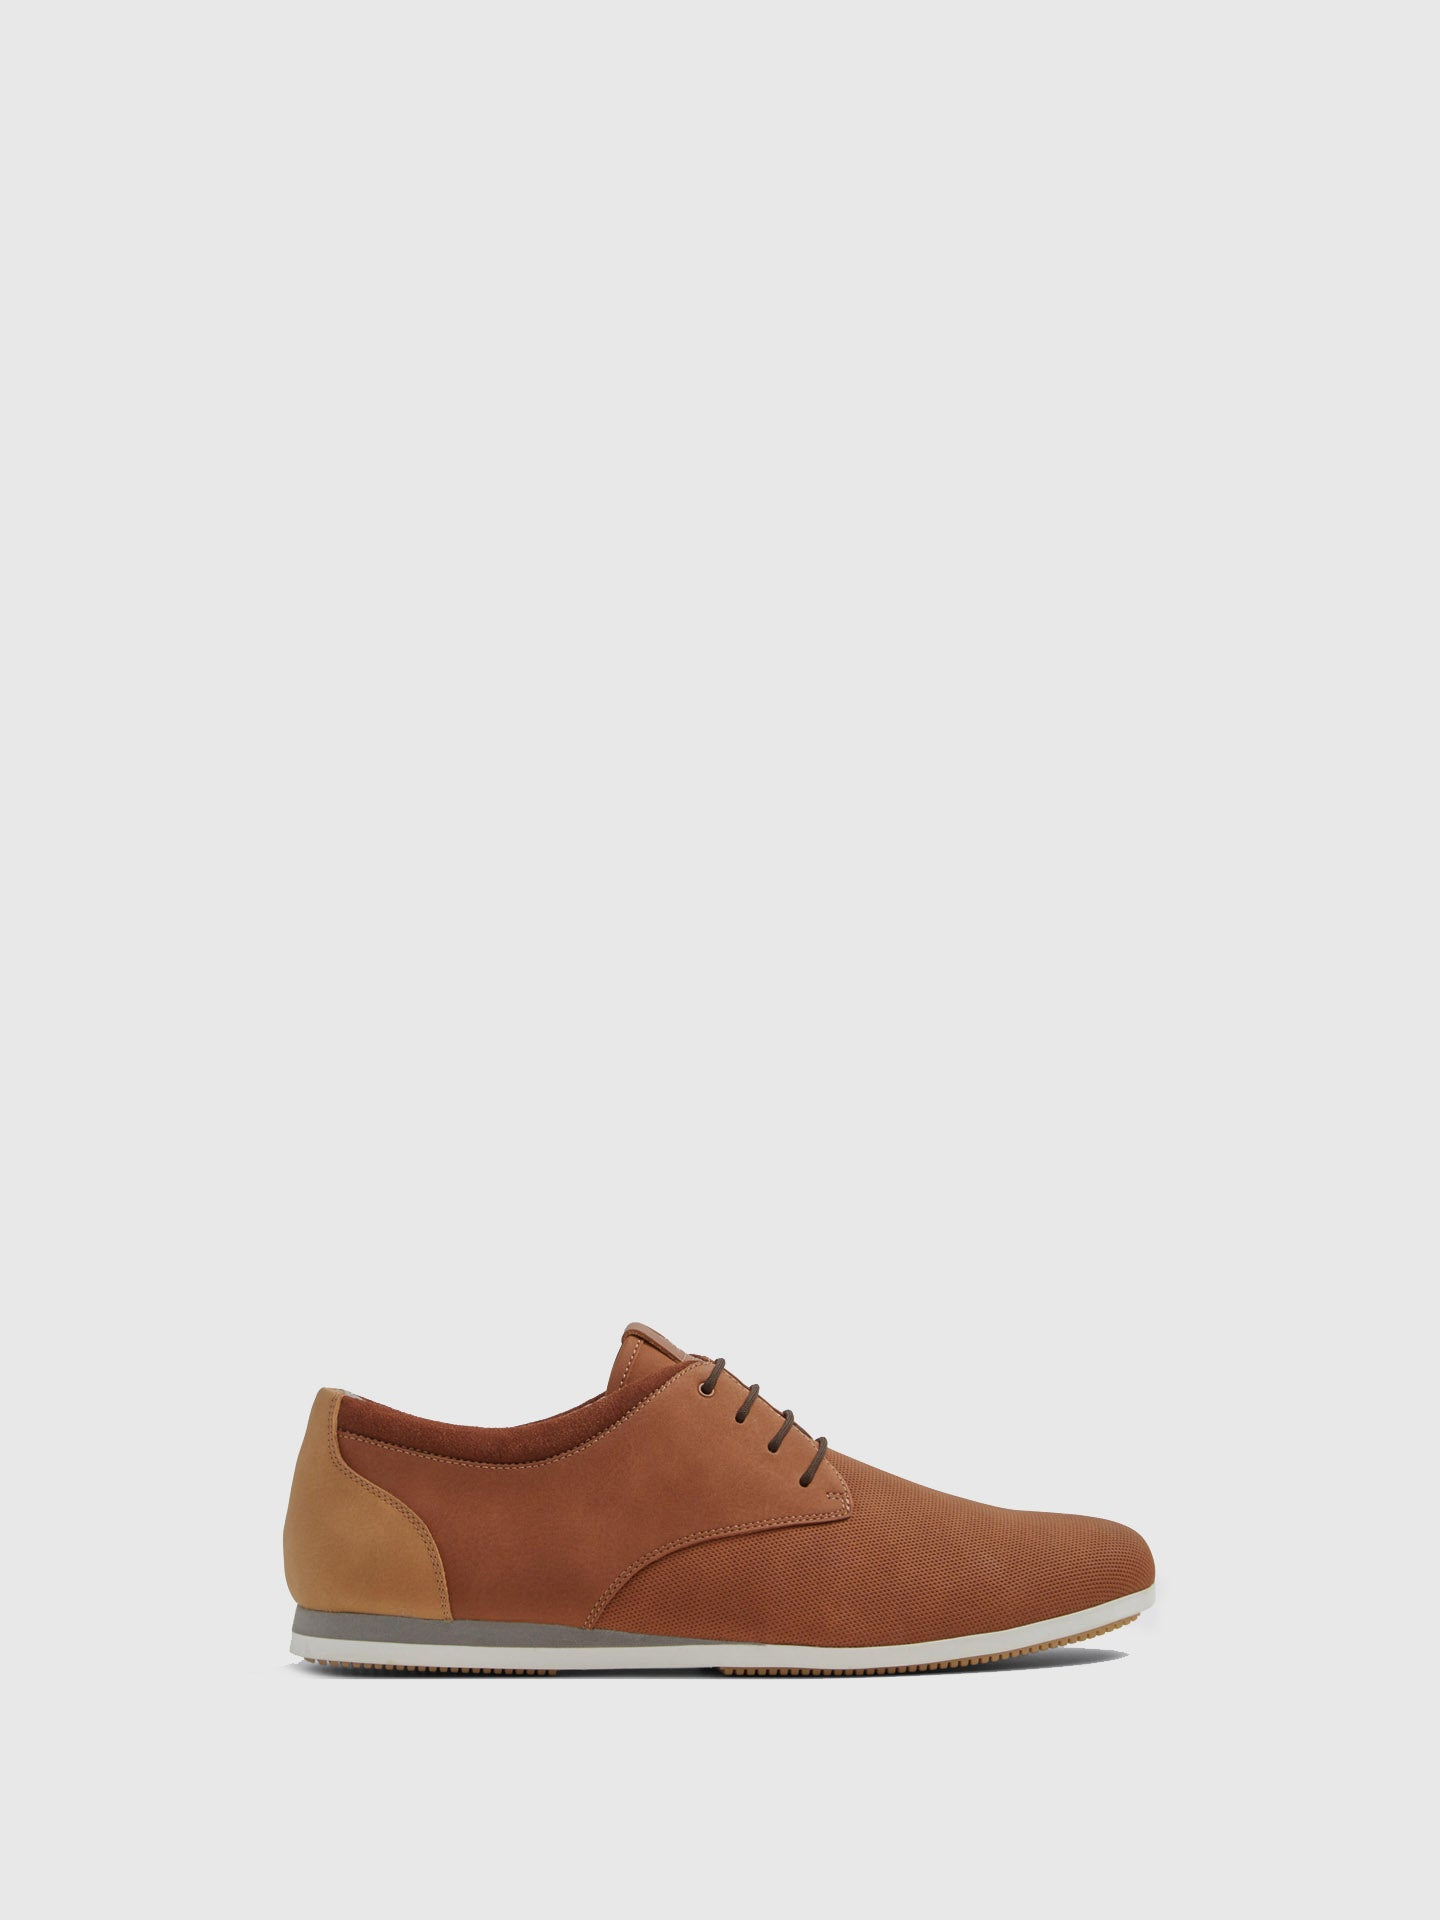 Aldo Sienna Lace-up Shoes